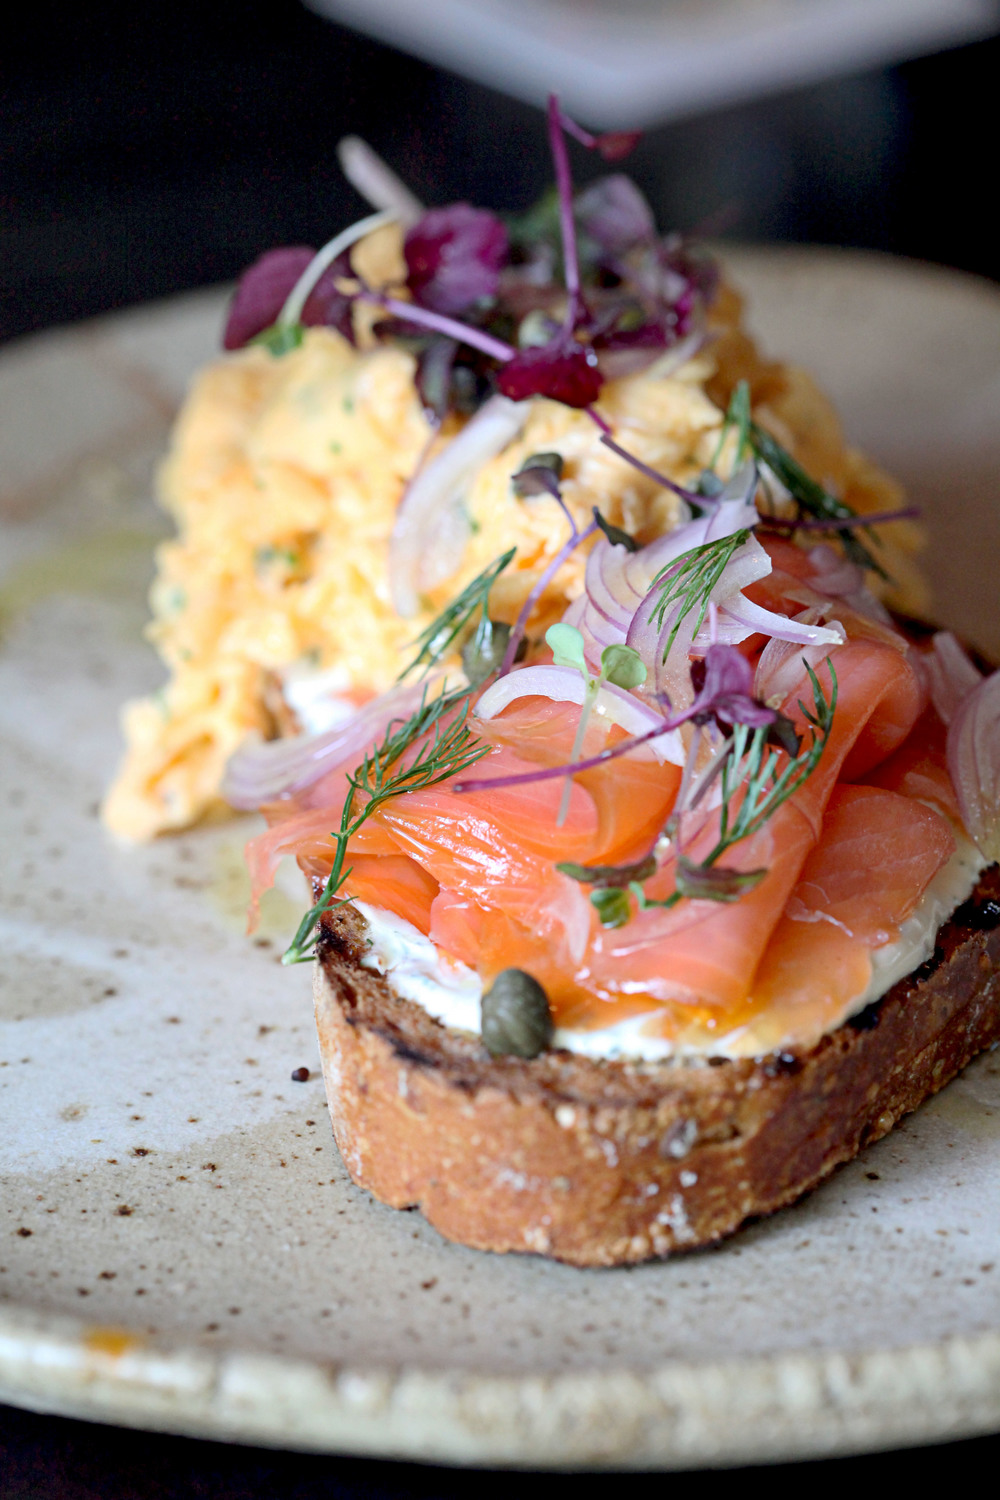 Smoked Salmon & Scrambled Eggs with Red Onions, Capers and Dill Cream Cheese